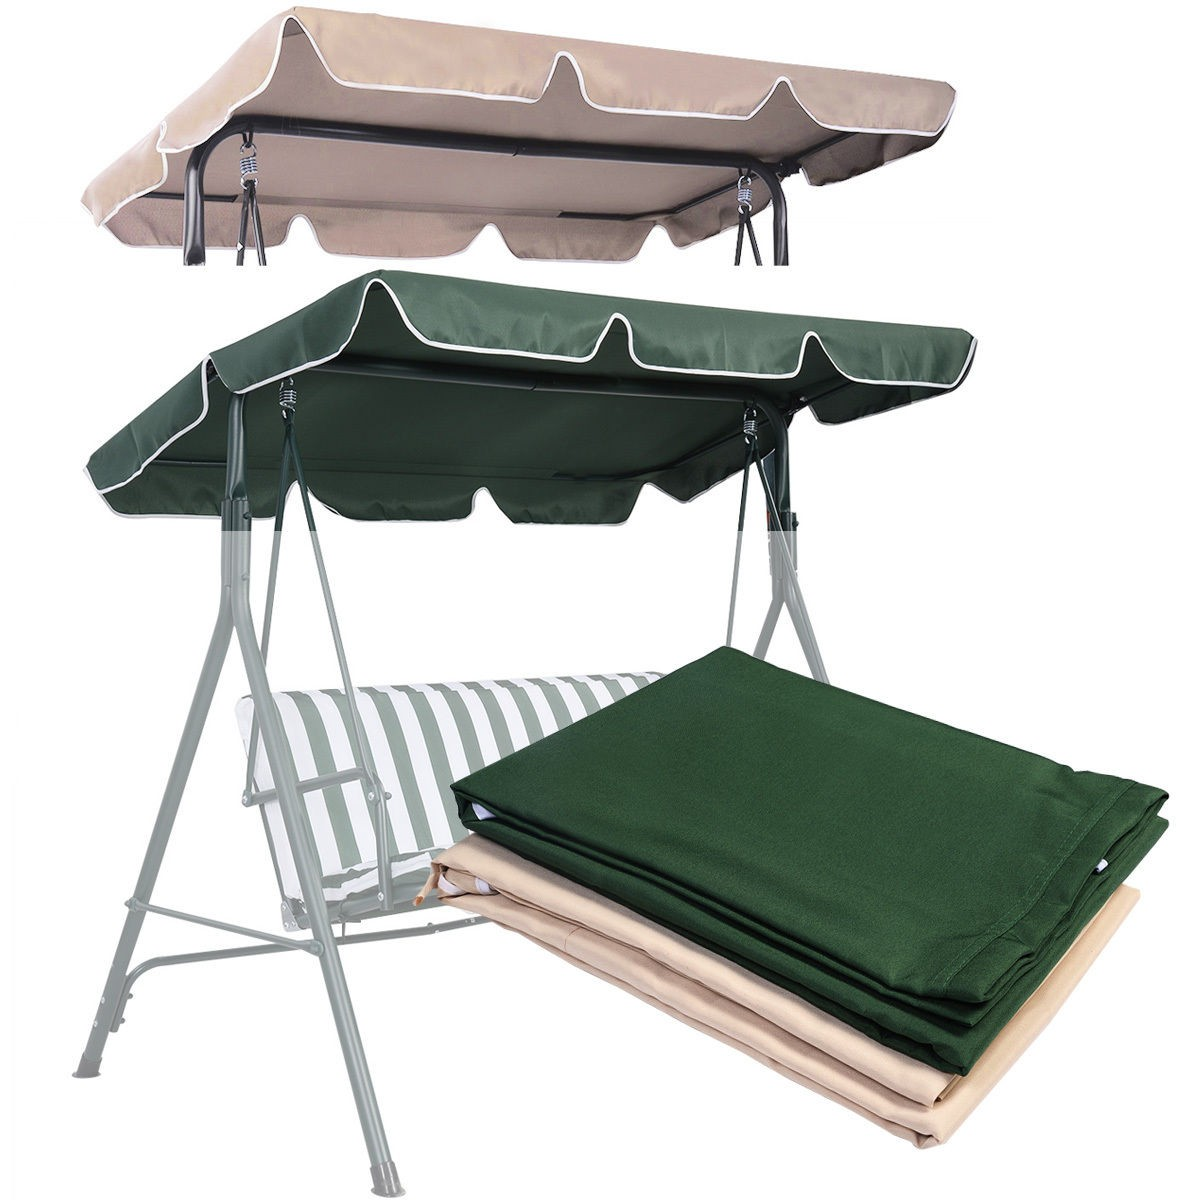 Hammock Awning Outdoor Patio Swing Canopy Replacement Cover Green - Walmart.com  sc 1 st  Walmart & Hammock Awning Outdoor Patio Swing Canopy Replacement Cover Green ...